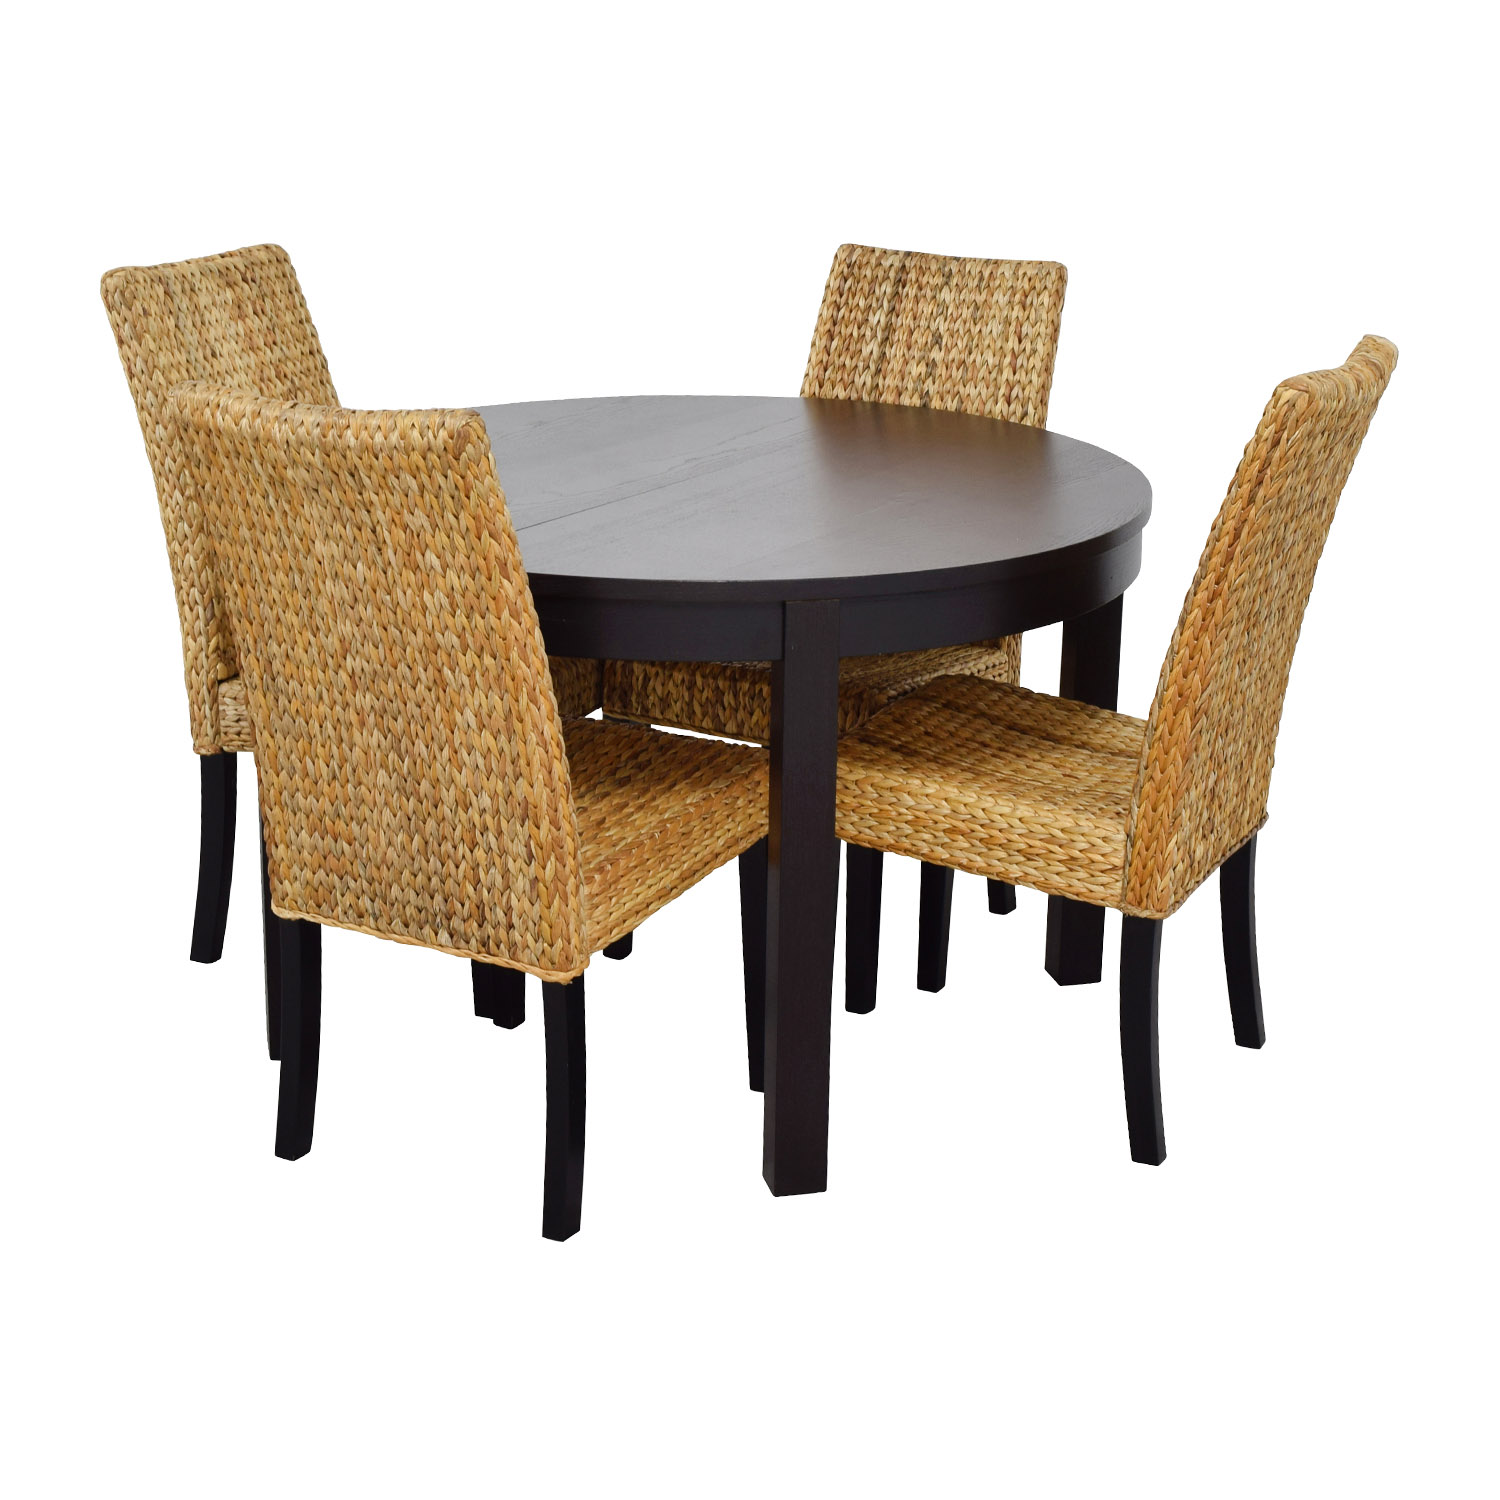 66 off macy 39 s ikea round black dining table set with for Four chair dining table